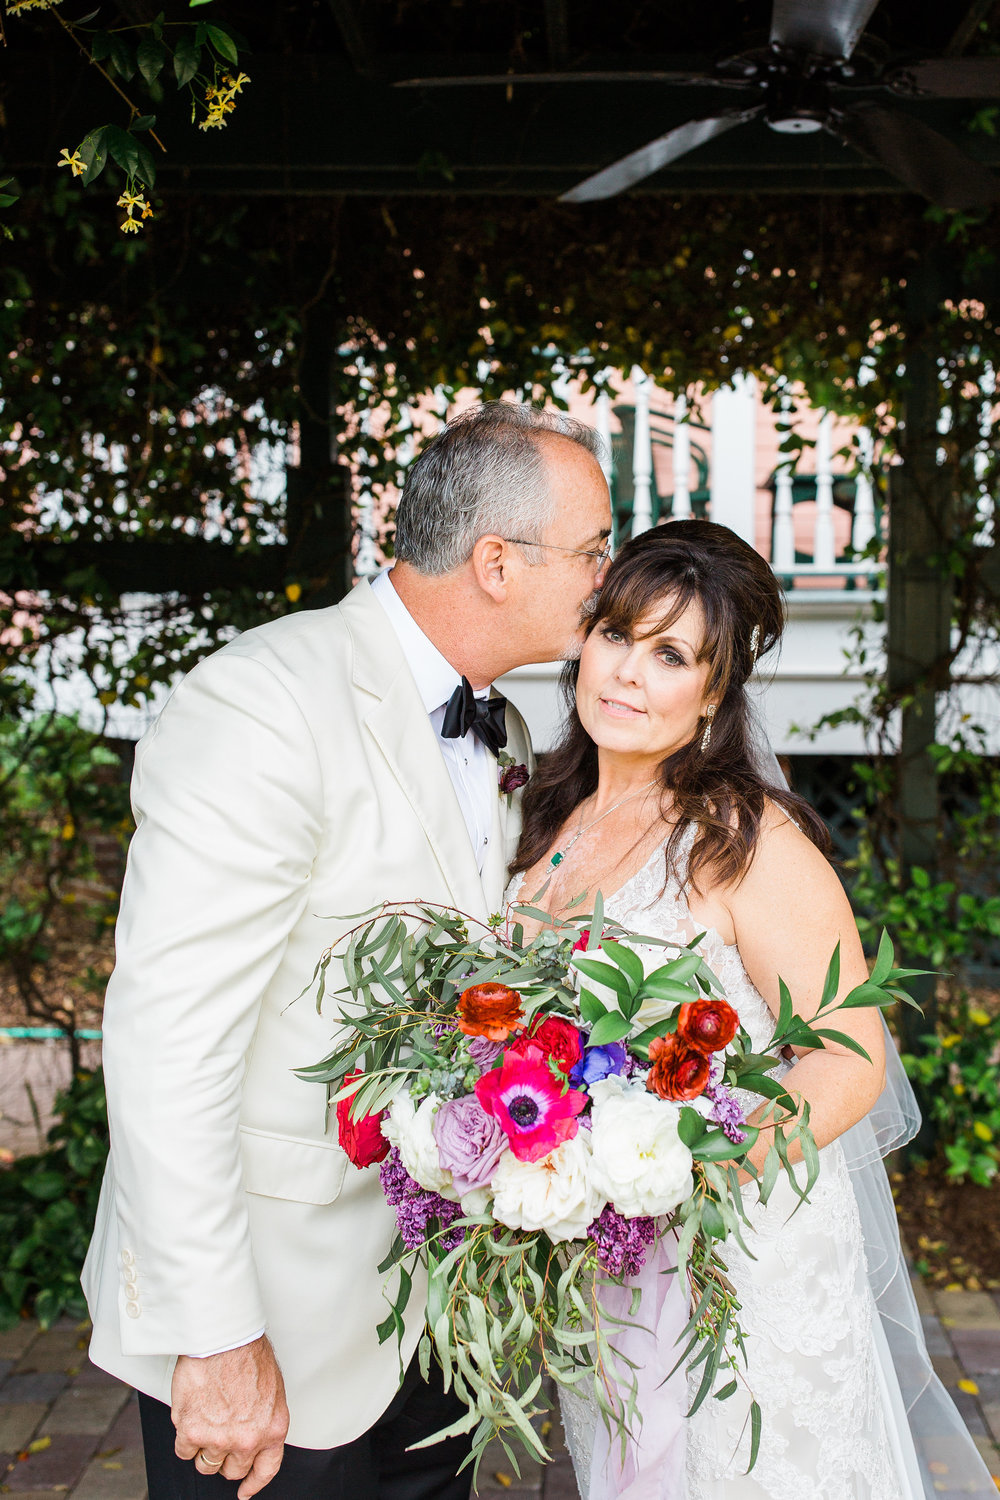 ivory-and-beau-bridal-boutique-jim-and-melanie-marianne-lucille-photography-oldfield-plantation-wedding-beautfort-inn-wedding-27.jpg